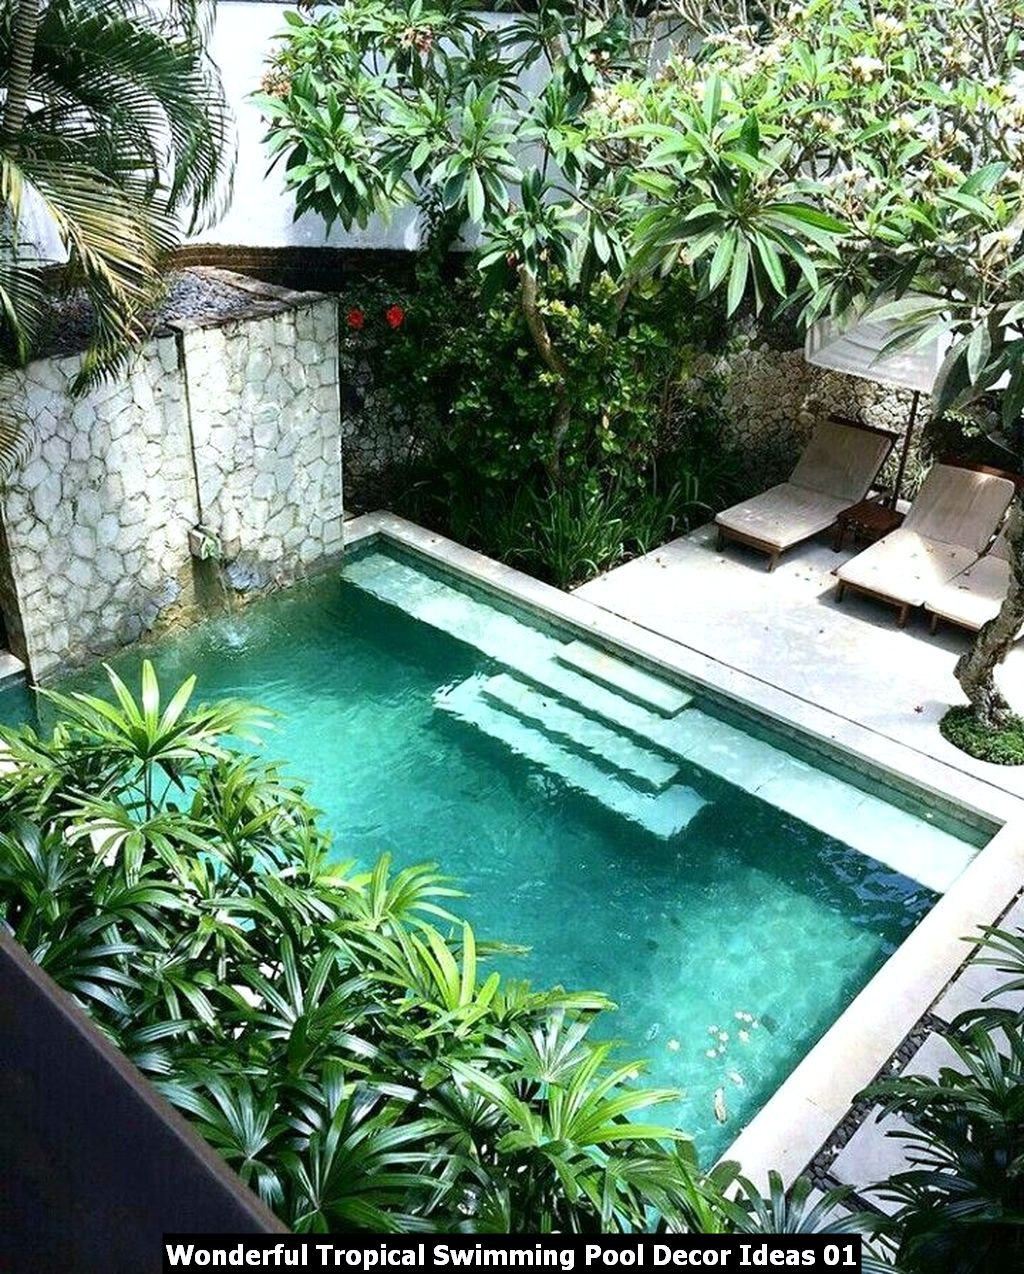 Wonderful Tropical Swimming Pool Decor Ideas 01